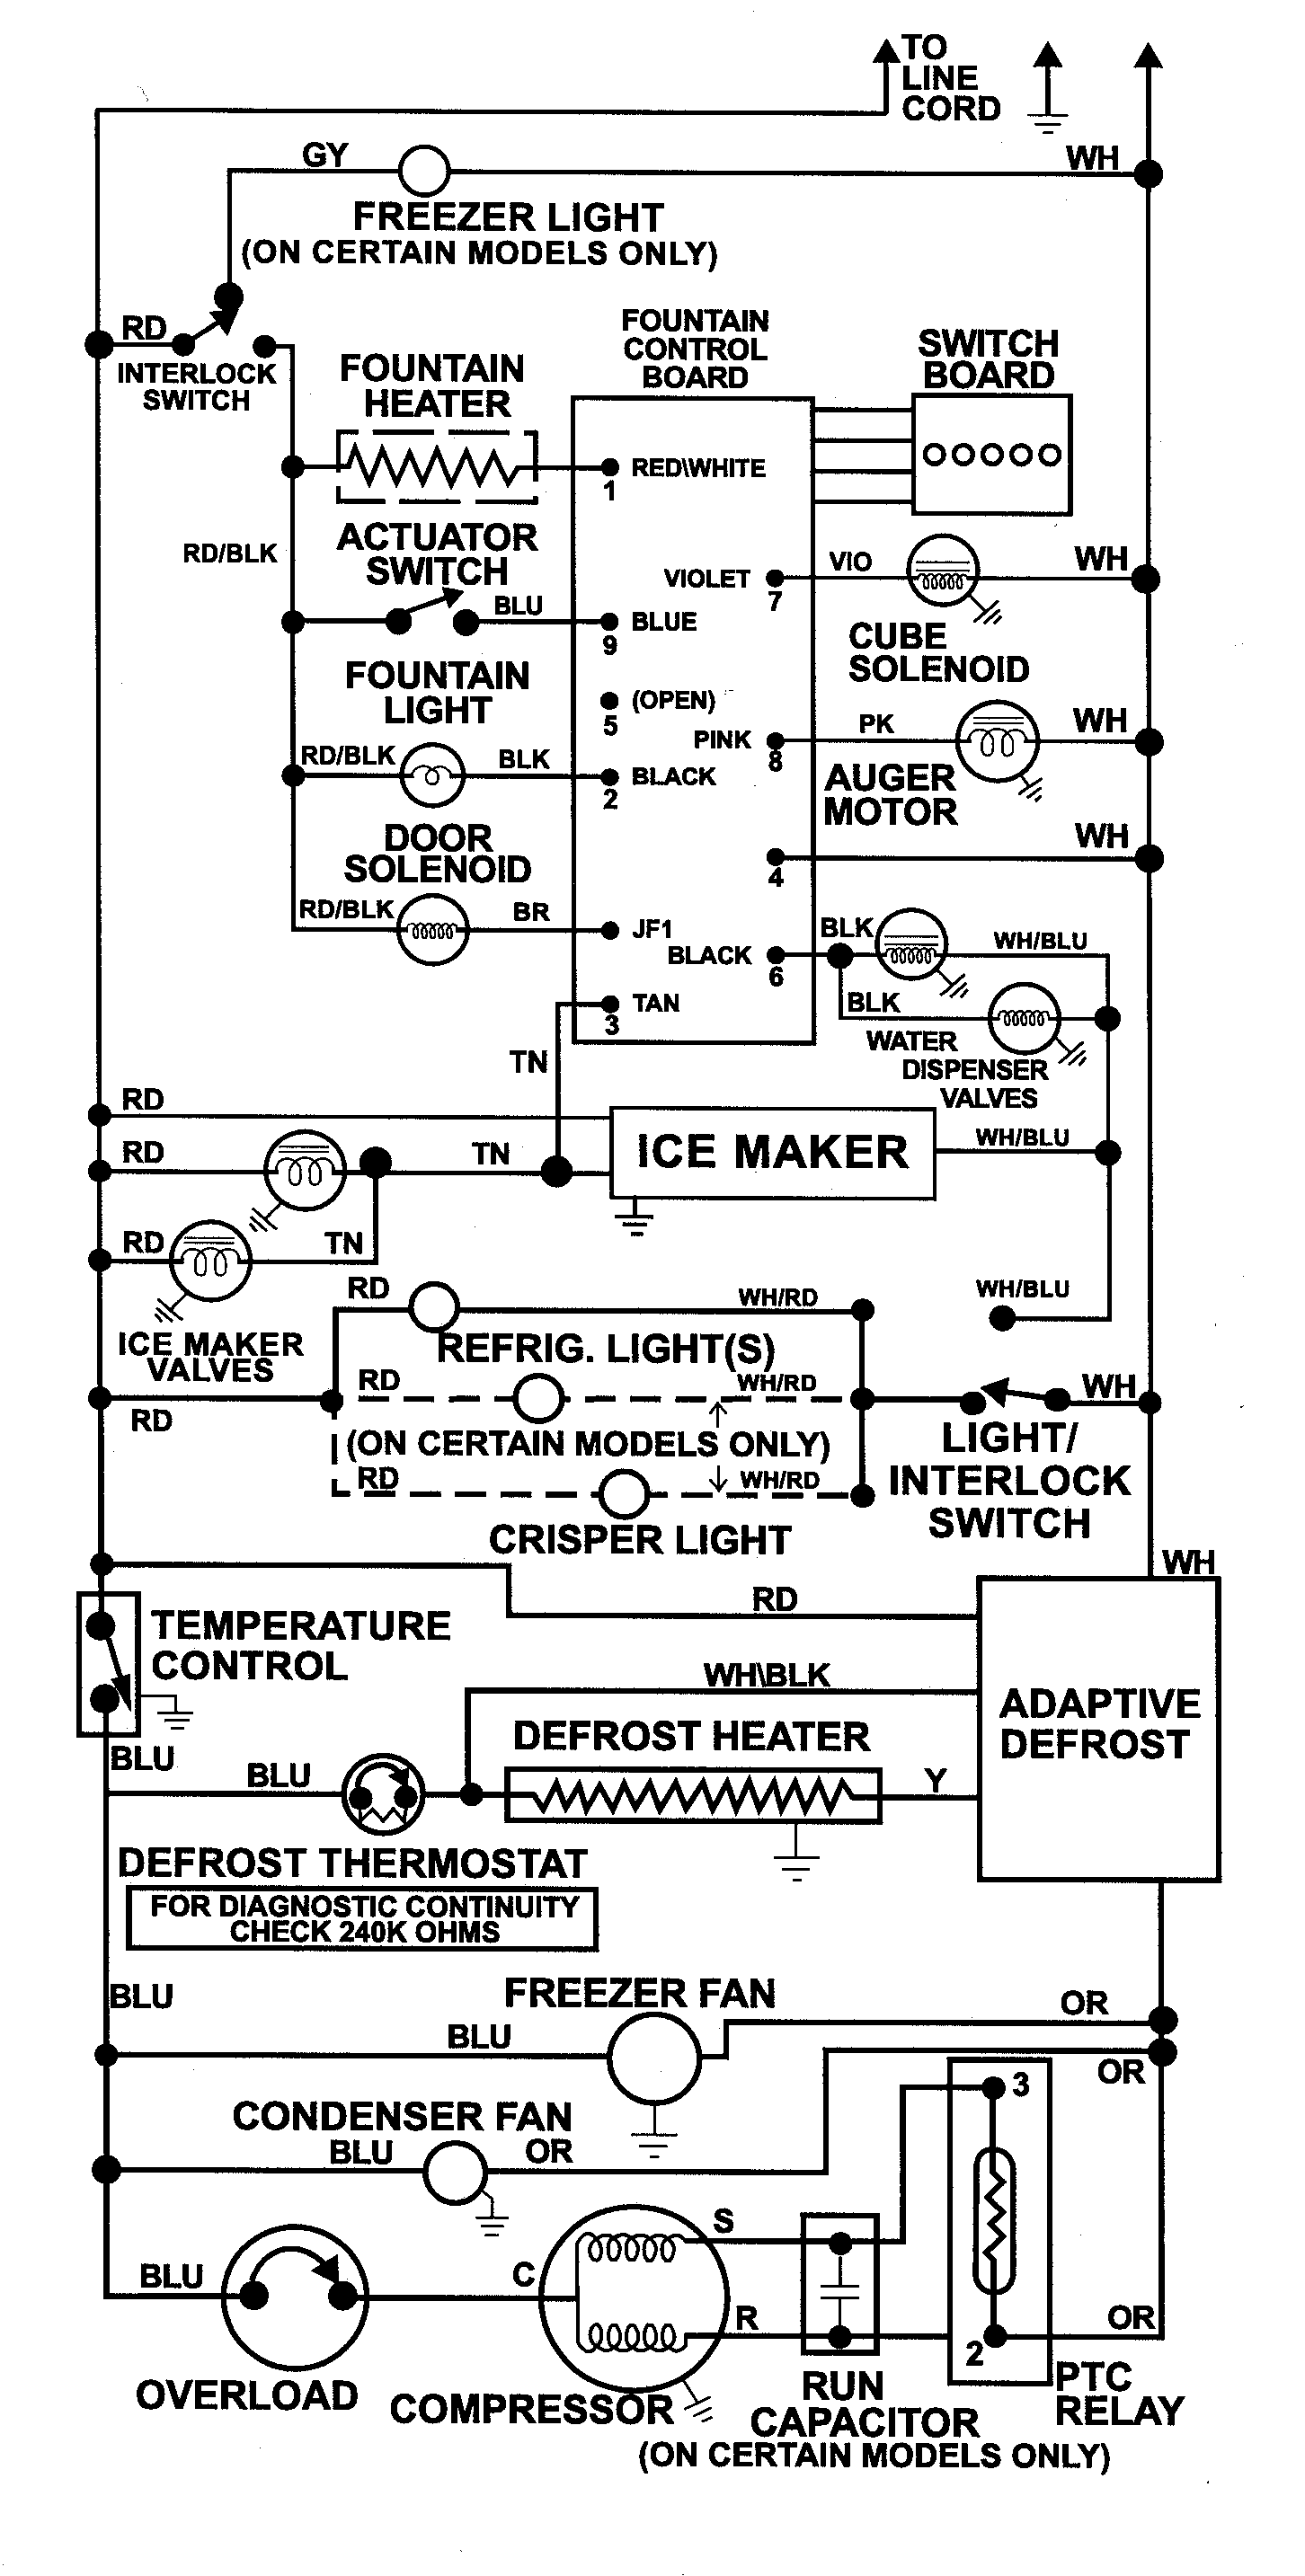 hight resolution of maytag msd2756ges wiring information diagram